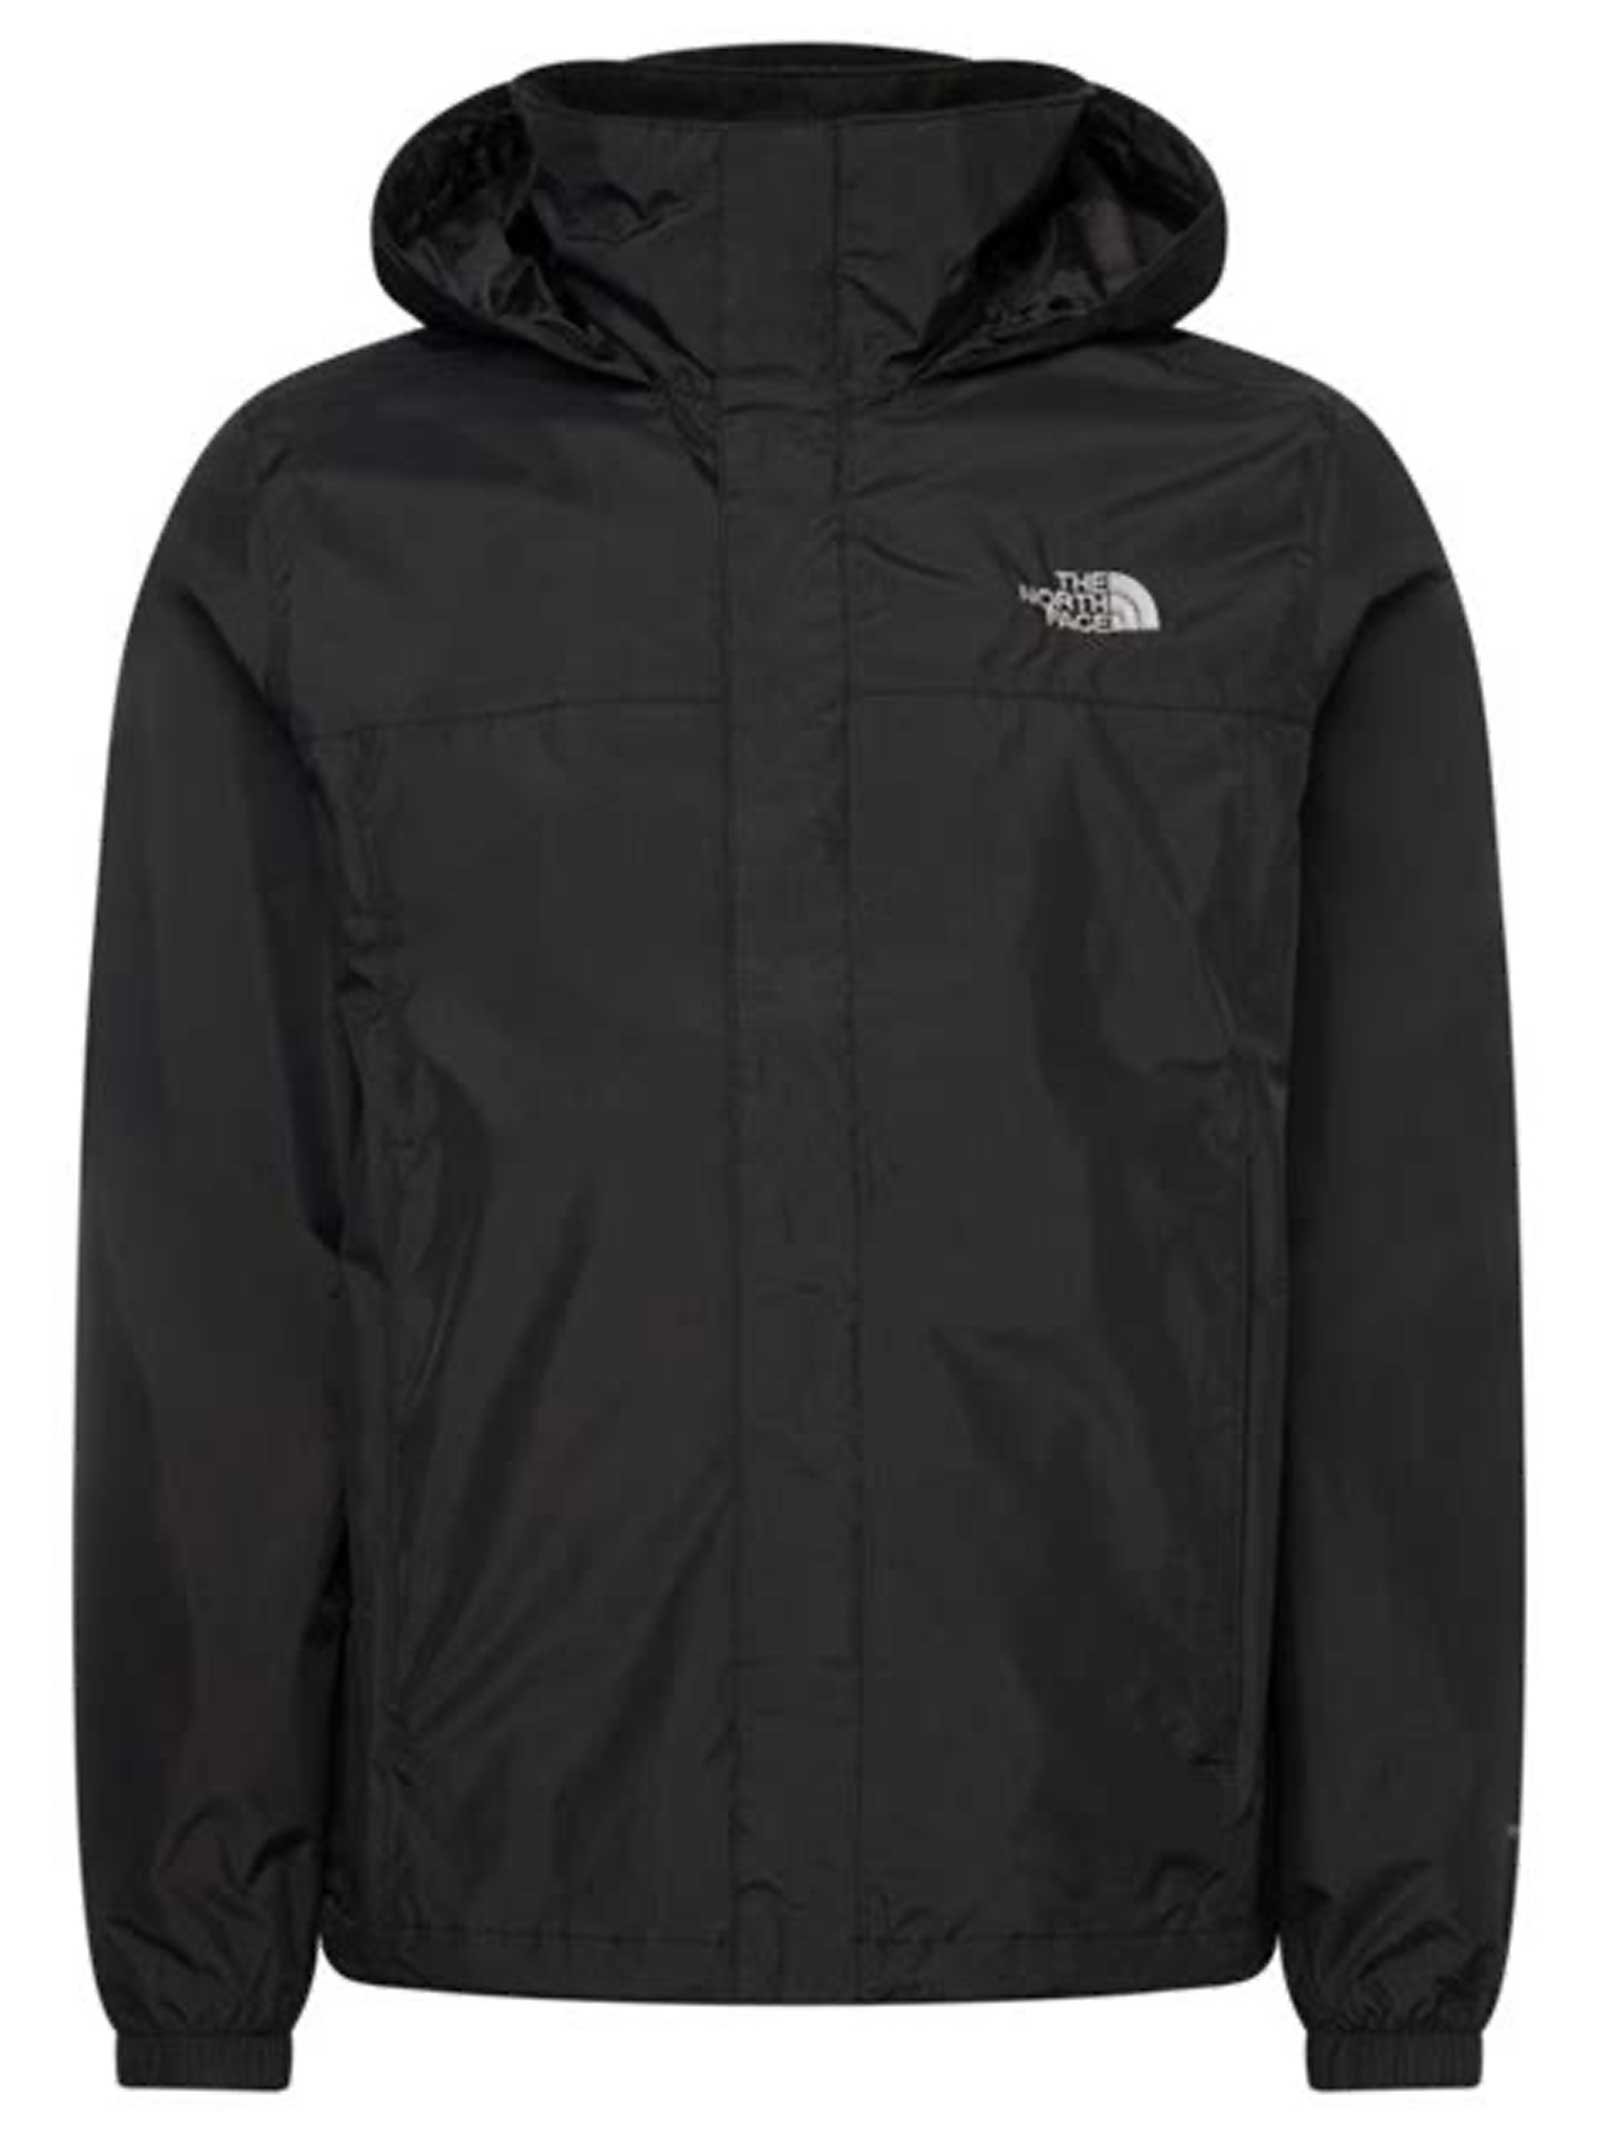 GIUBBOTTO  THE NORTH FACE THE NORTH FACE   Giubbotto   NF0A2VD5KX71